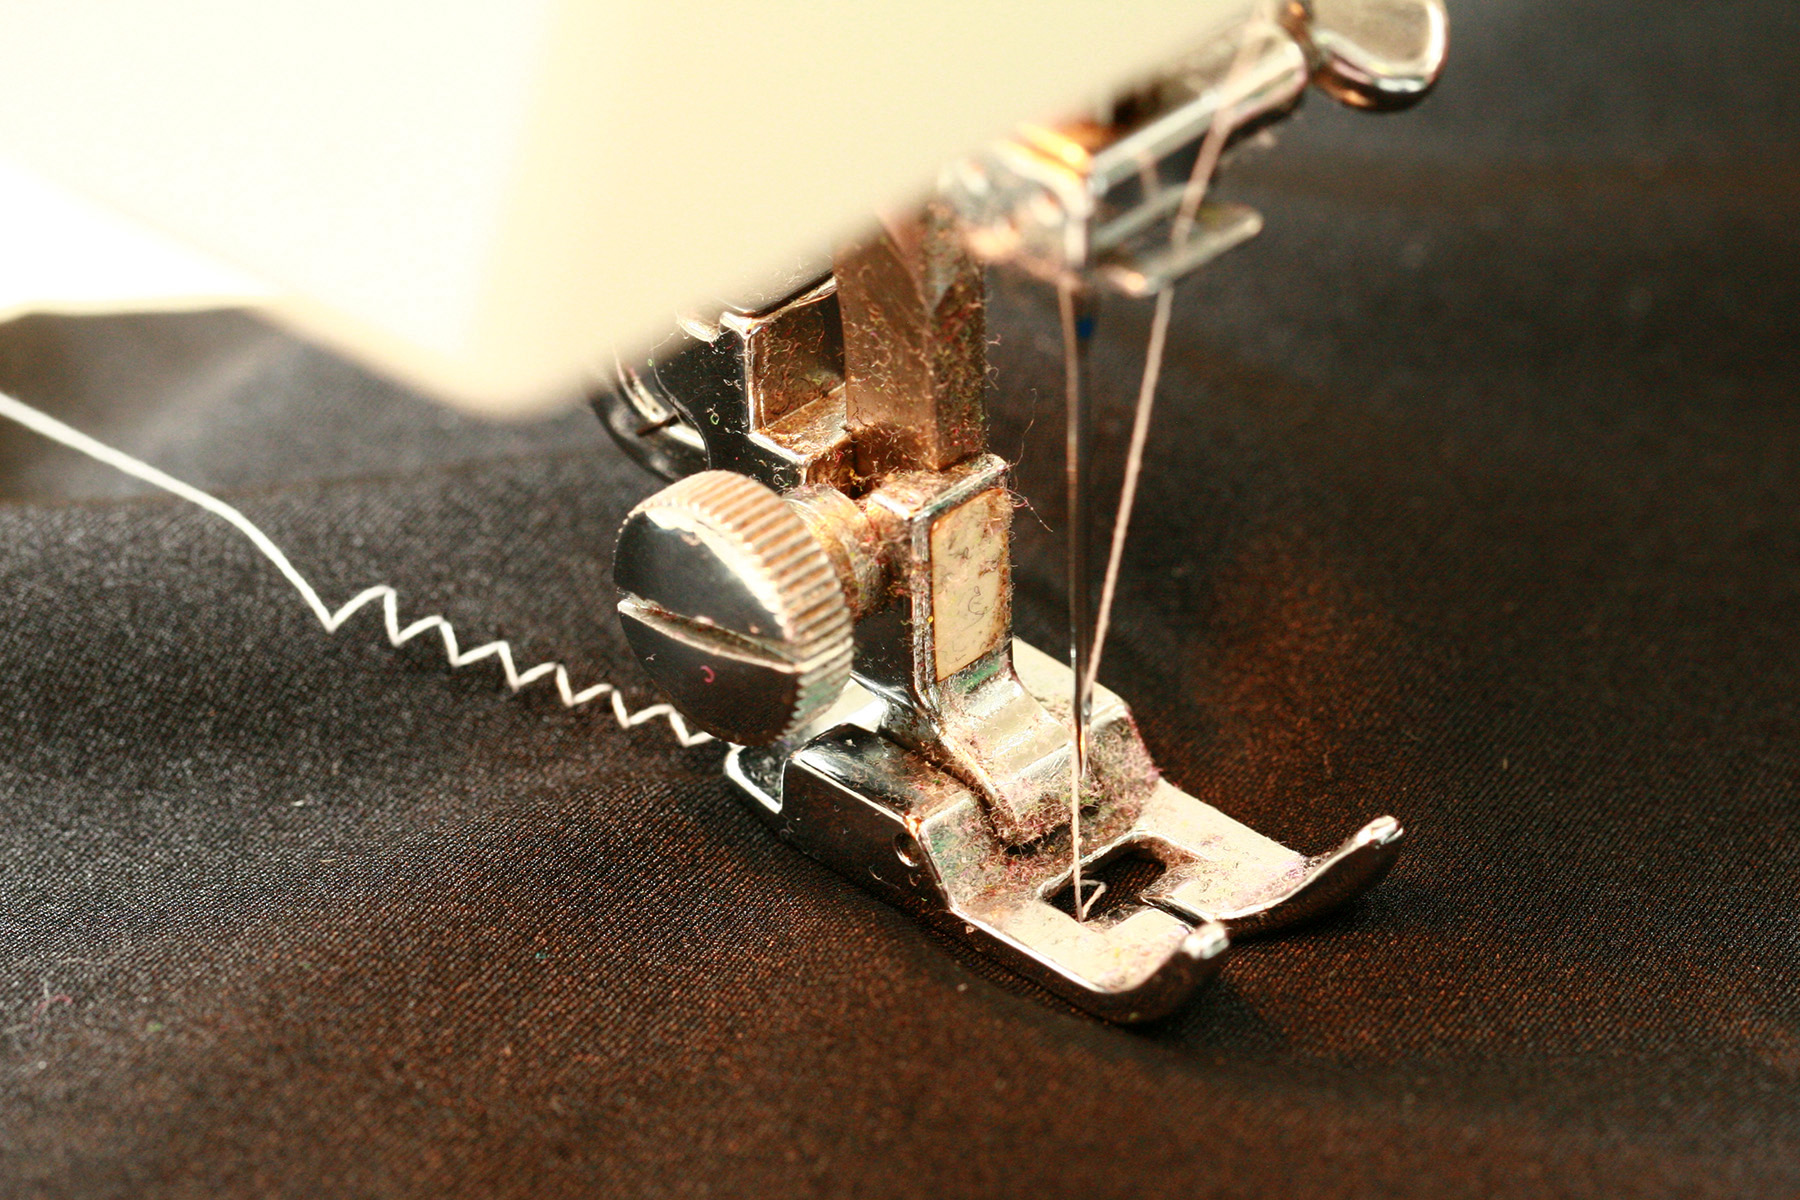 A close up view of a sewing machine sewing spandex with a zig zag stitch.